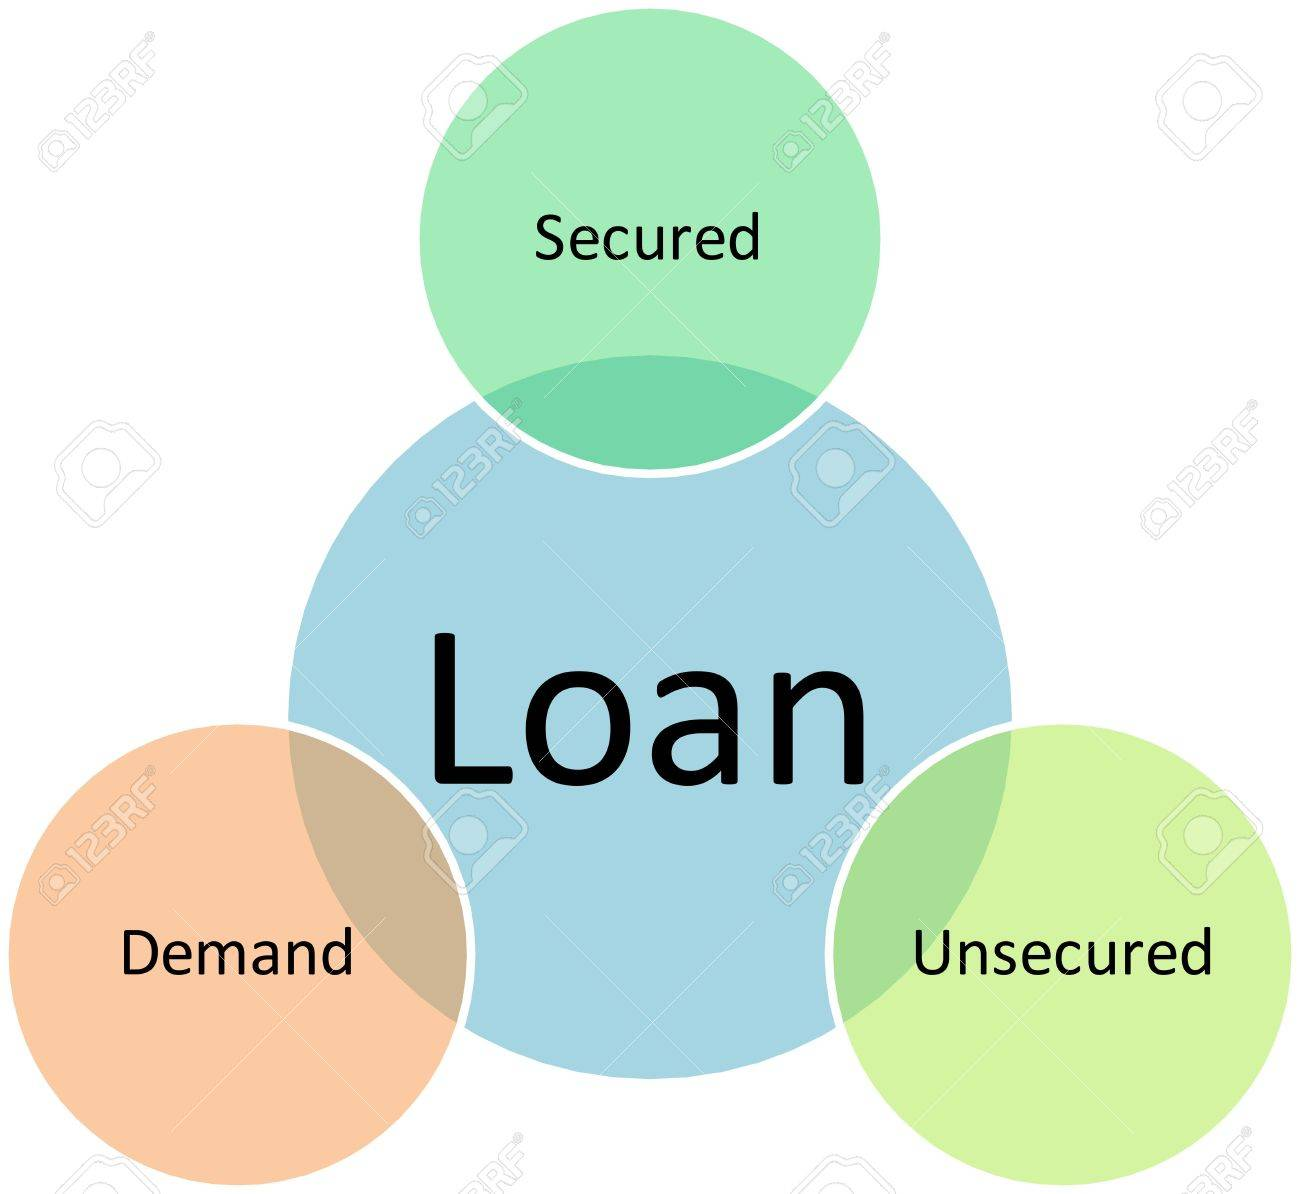 loan types management business strategy concept diagram illustration loan types management business strategy concept diagram illustration